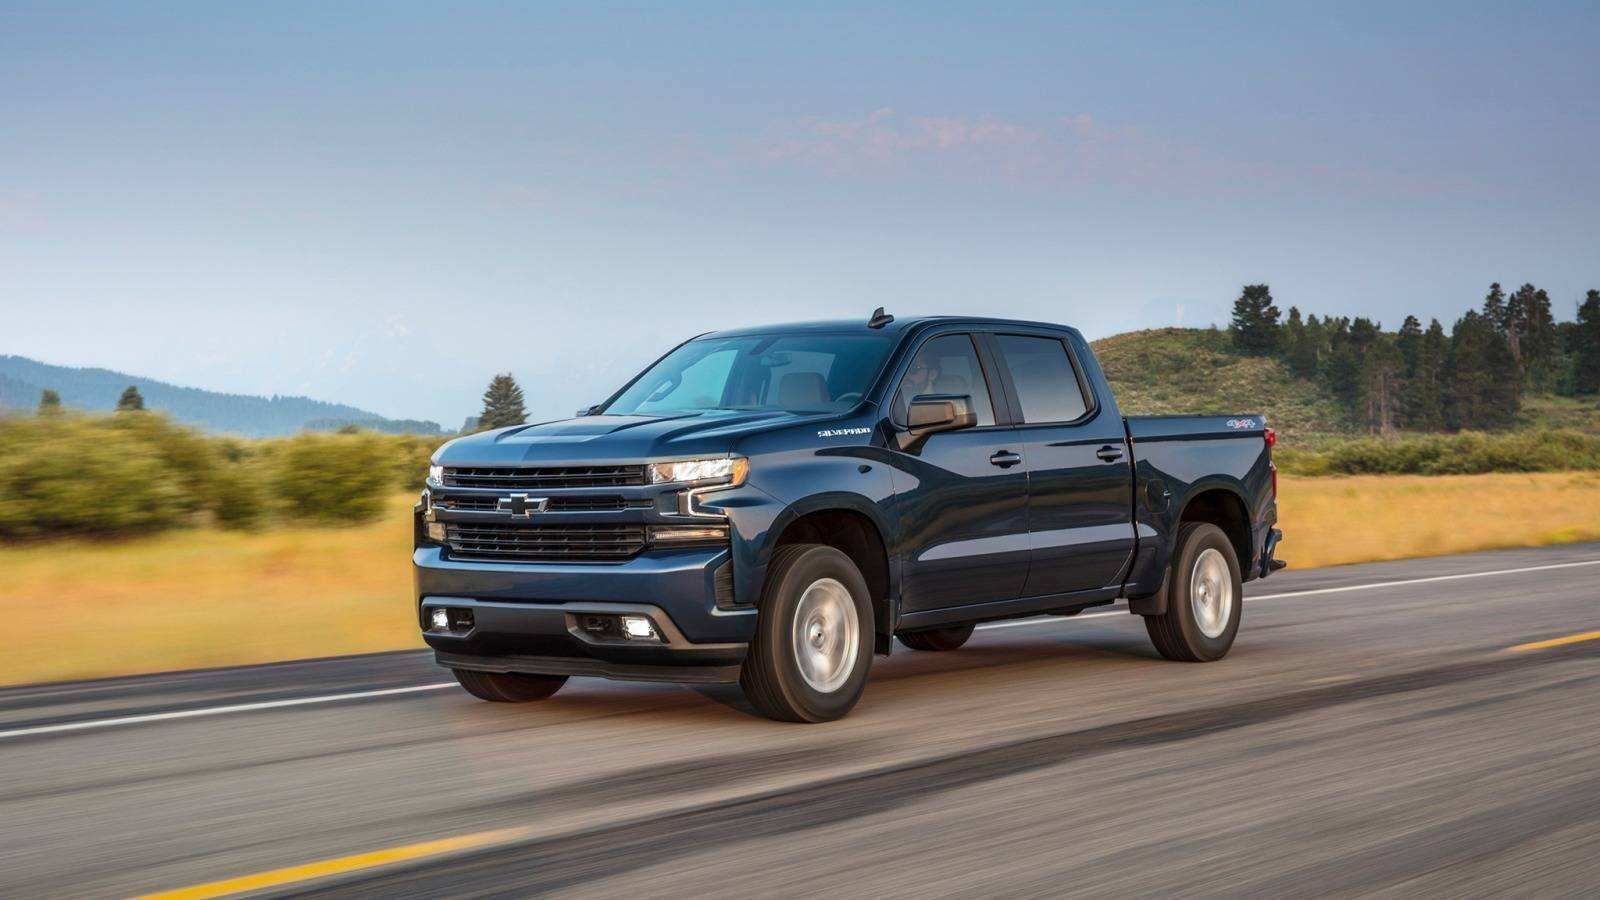 84 Best Review New 2019 Chevrolet Silverado Interior Specs And Review Picture for New 2019 Chevrolet Silverado Interior Specs And Review